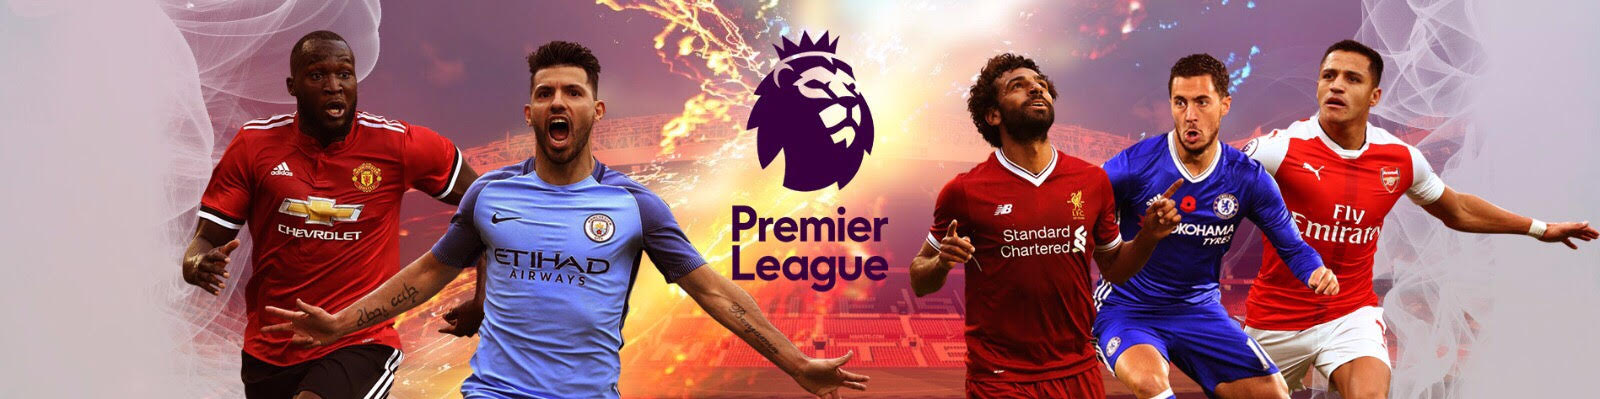 how to buy premier league tickets from australia